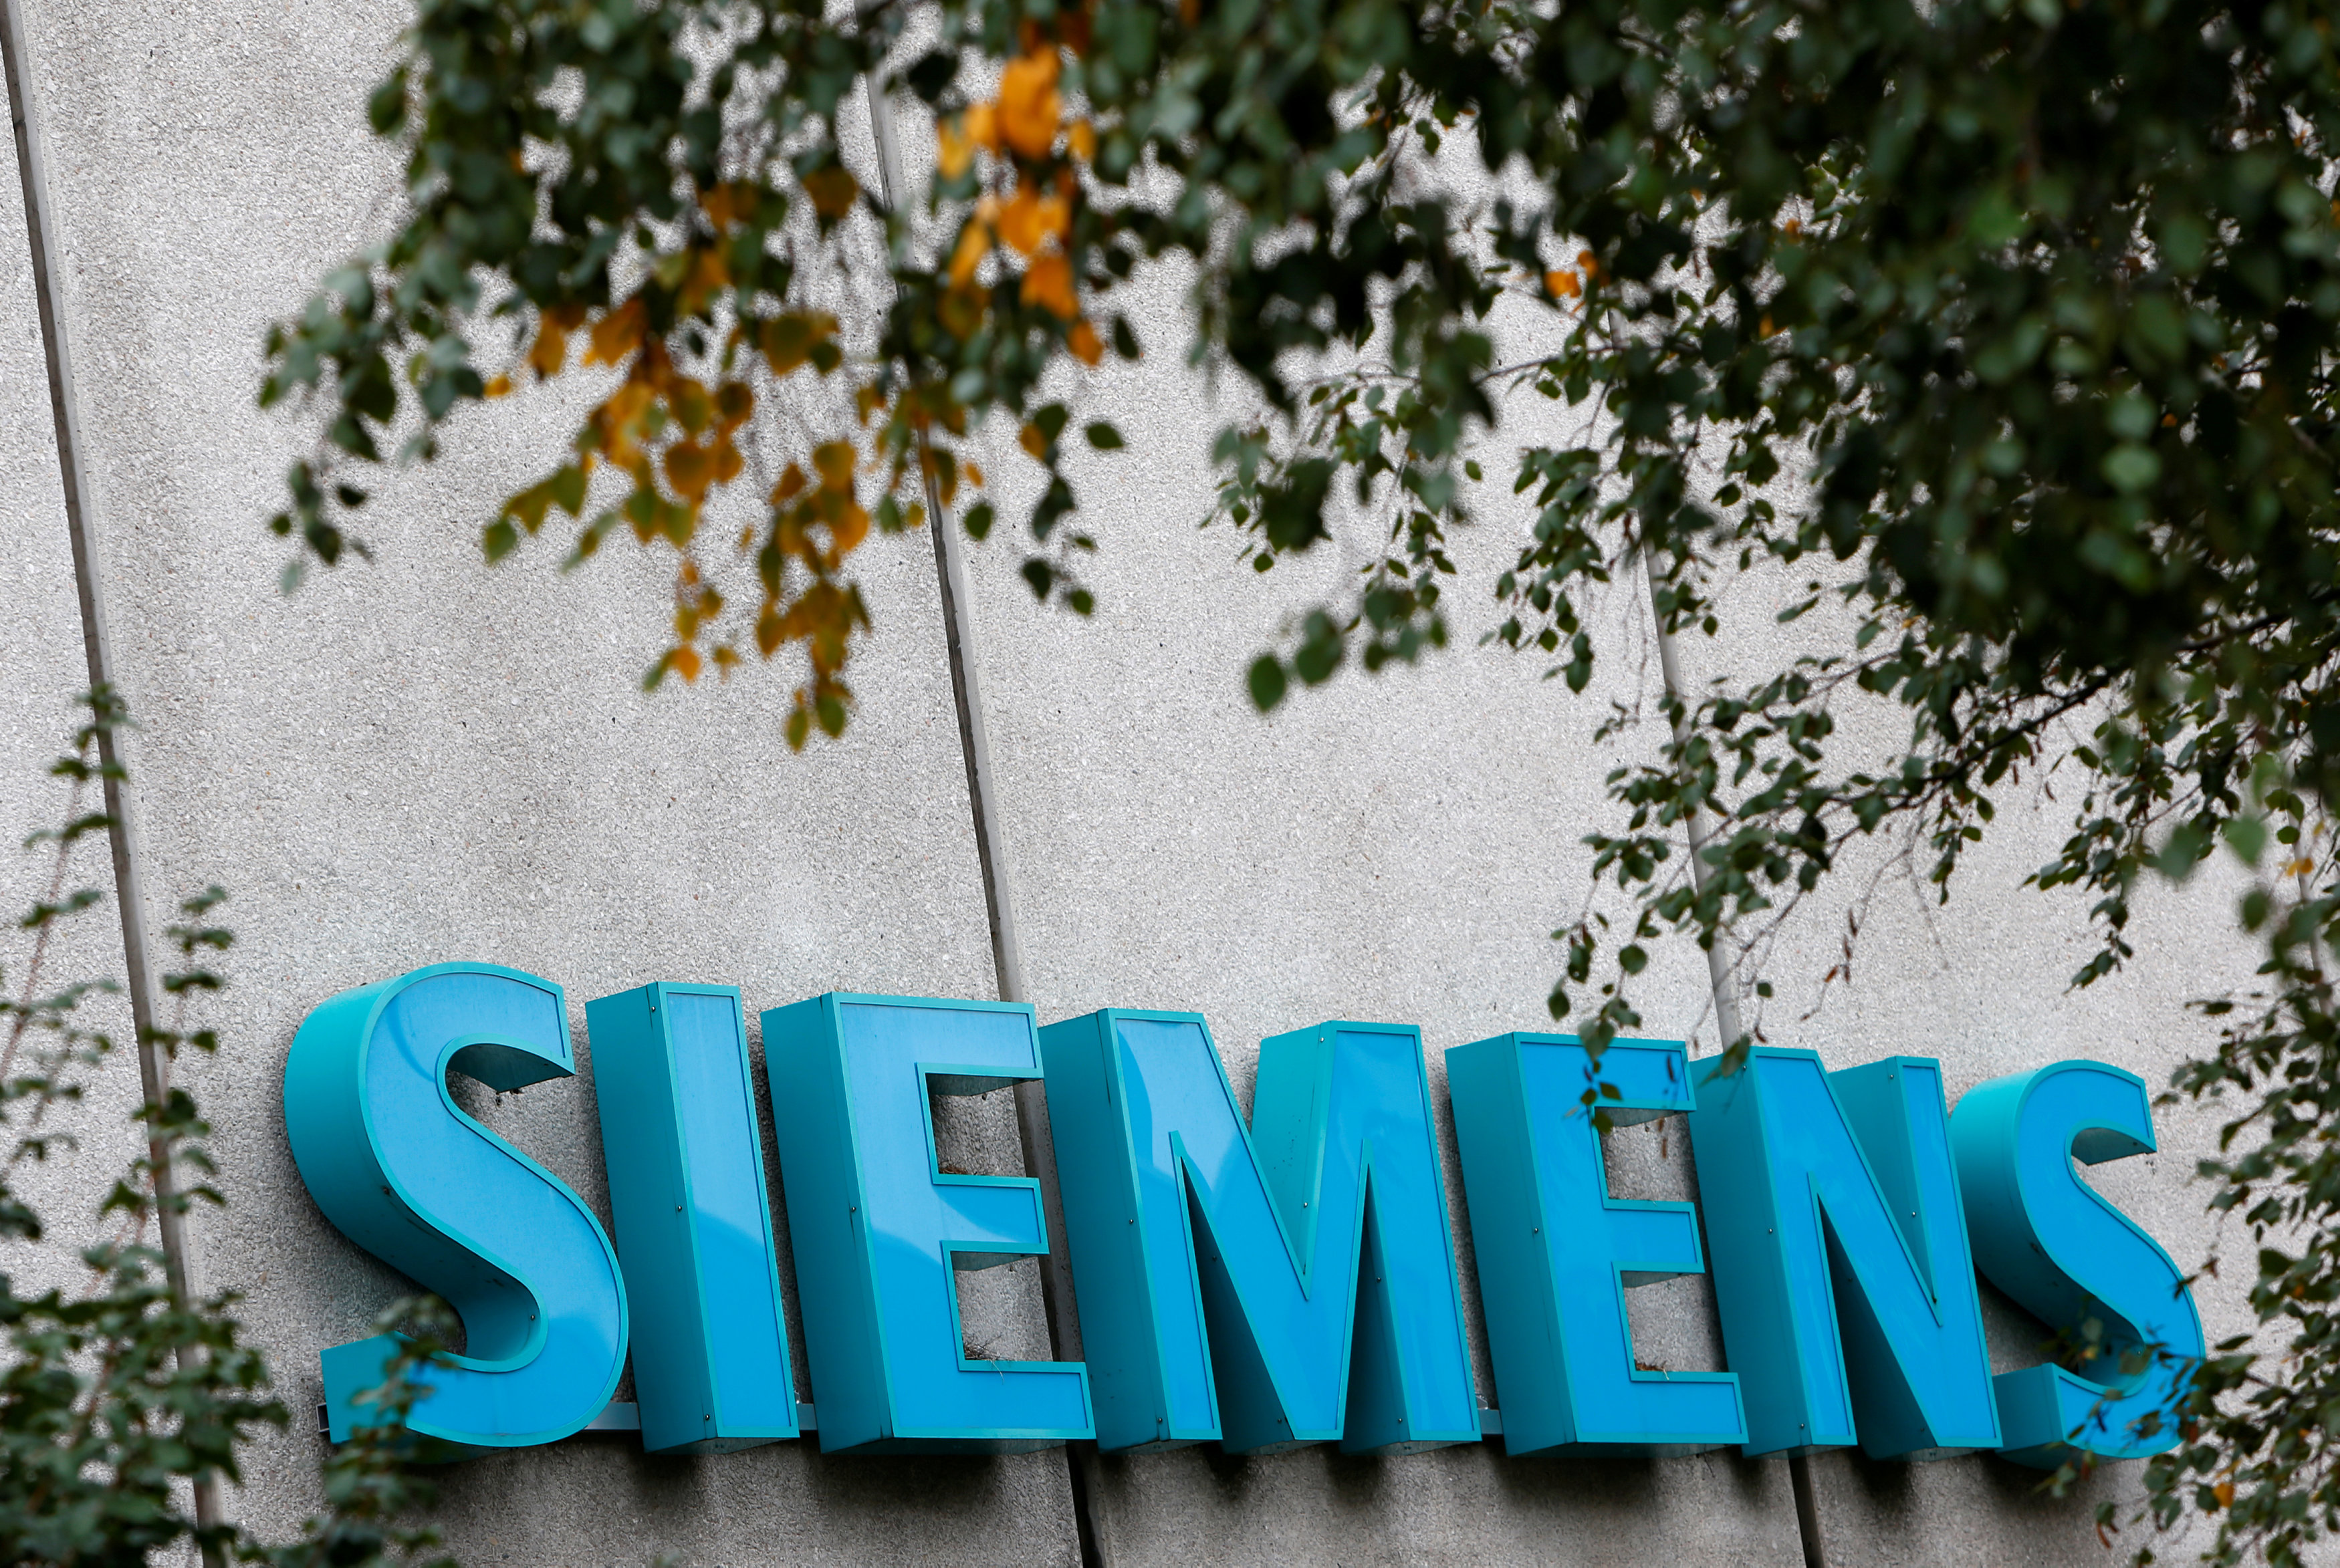 Siemens to strengthen Egypt's national grid